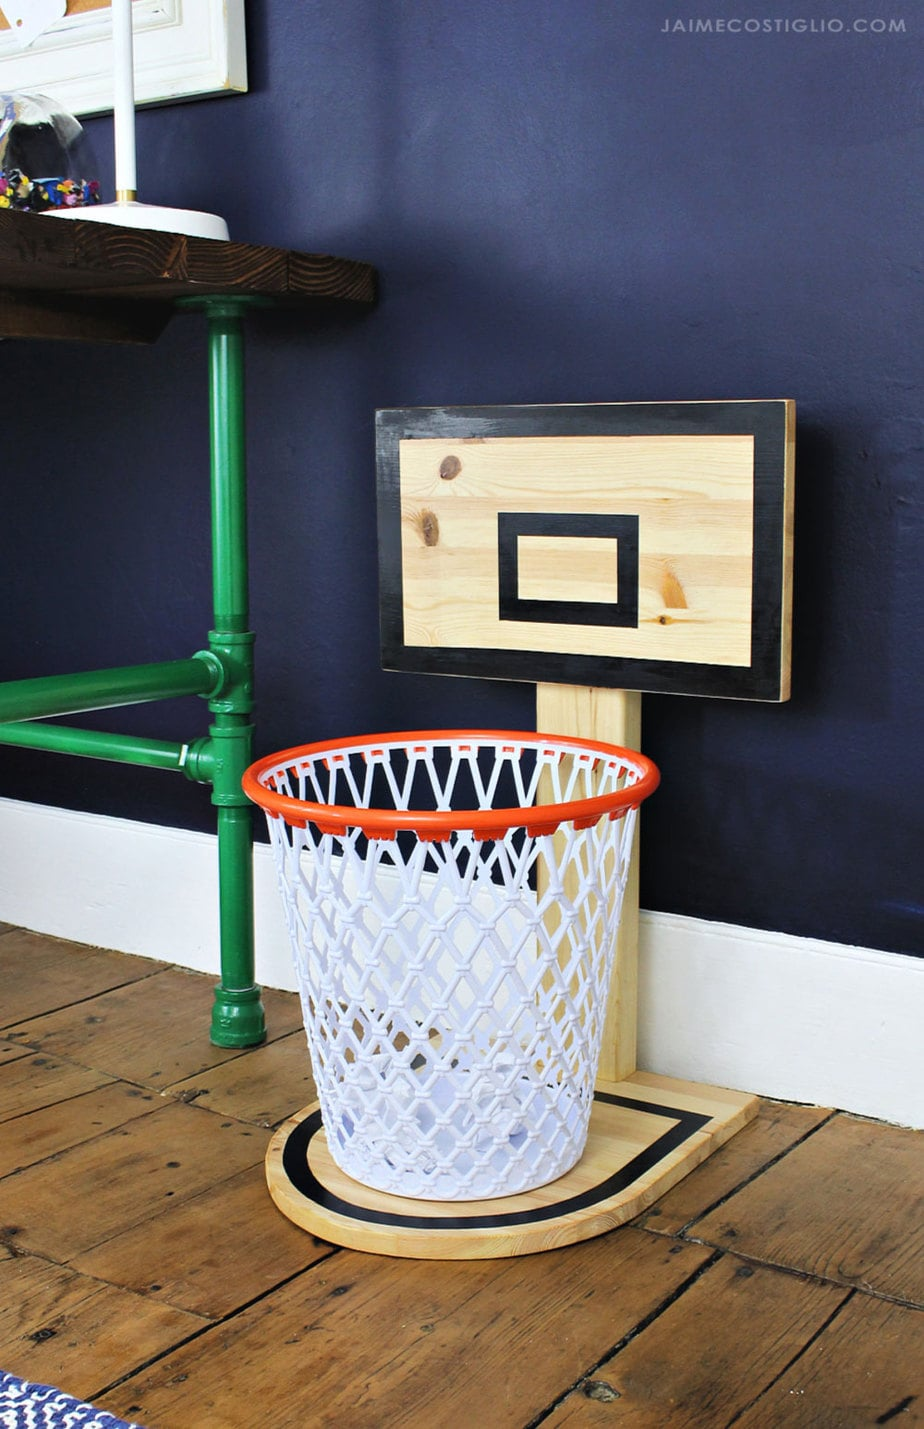 Fun Trash Can Diy Basketball Hoop Trash Can Jaime Costiglio